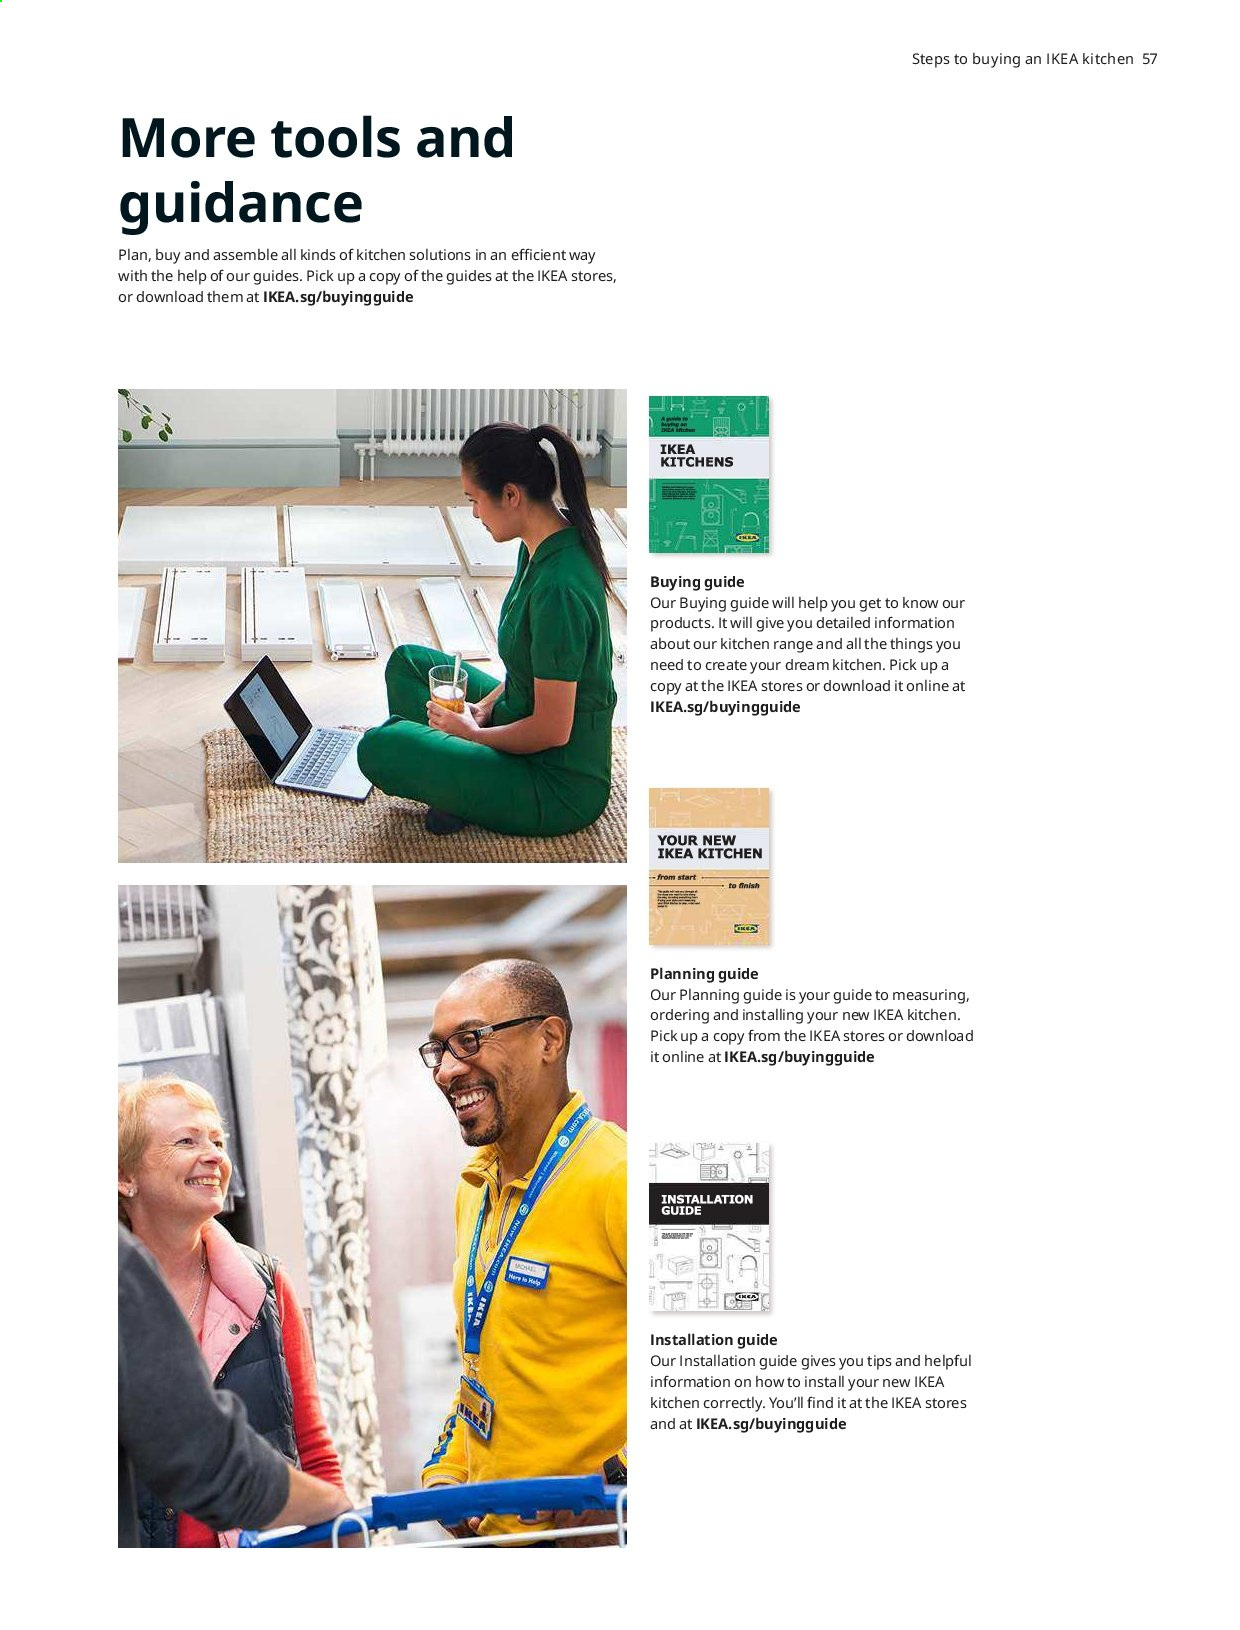 Ikea Promotion 11 12 2019 31 07 2020 Top Catalogues,How To Get Out Of The Friend Zone Book Pdf